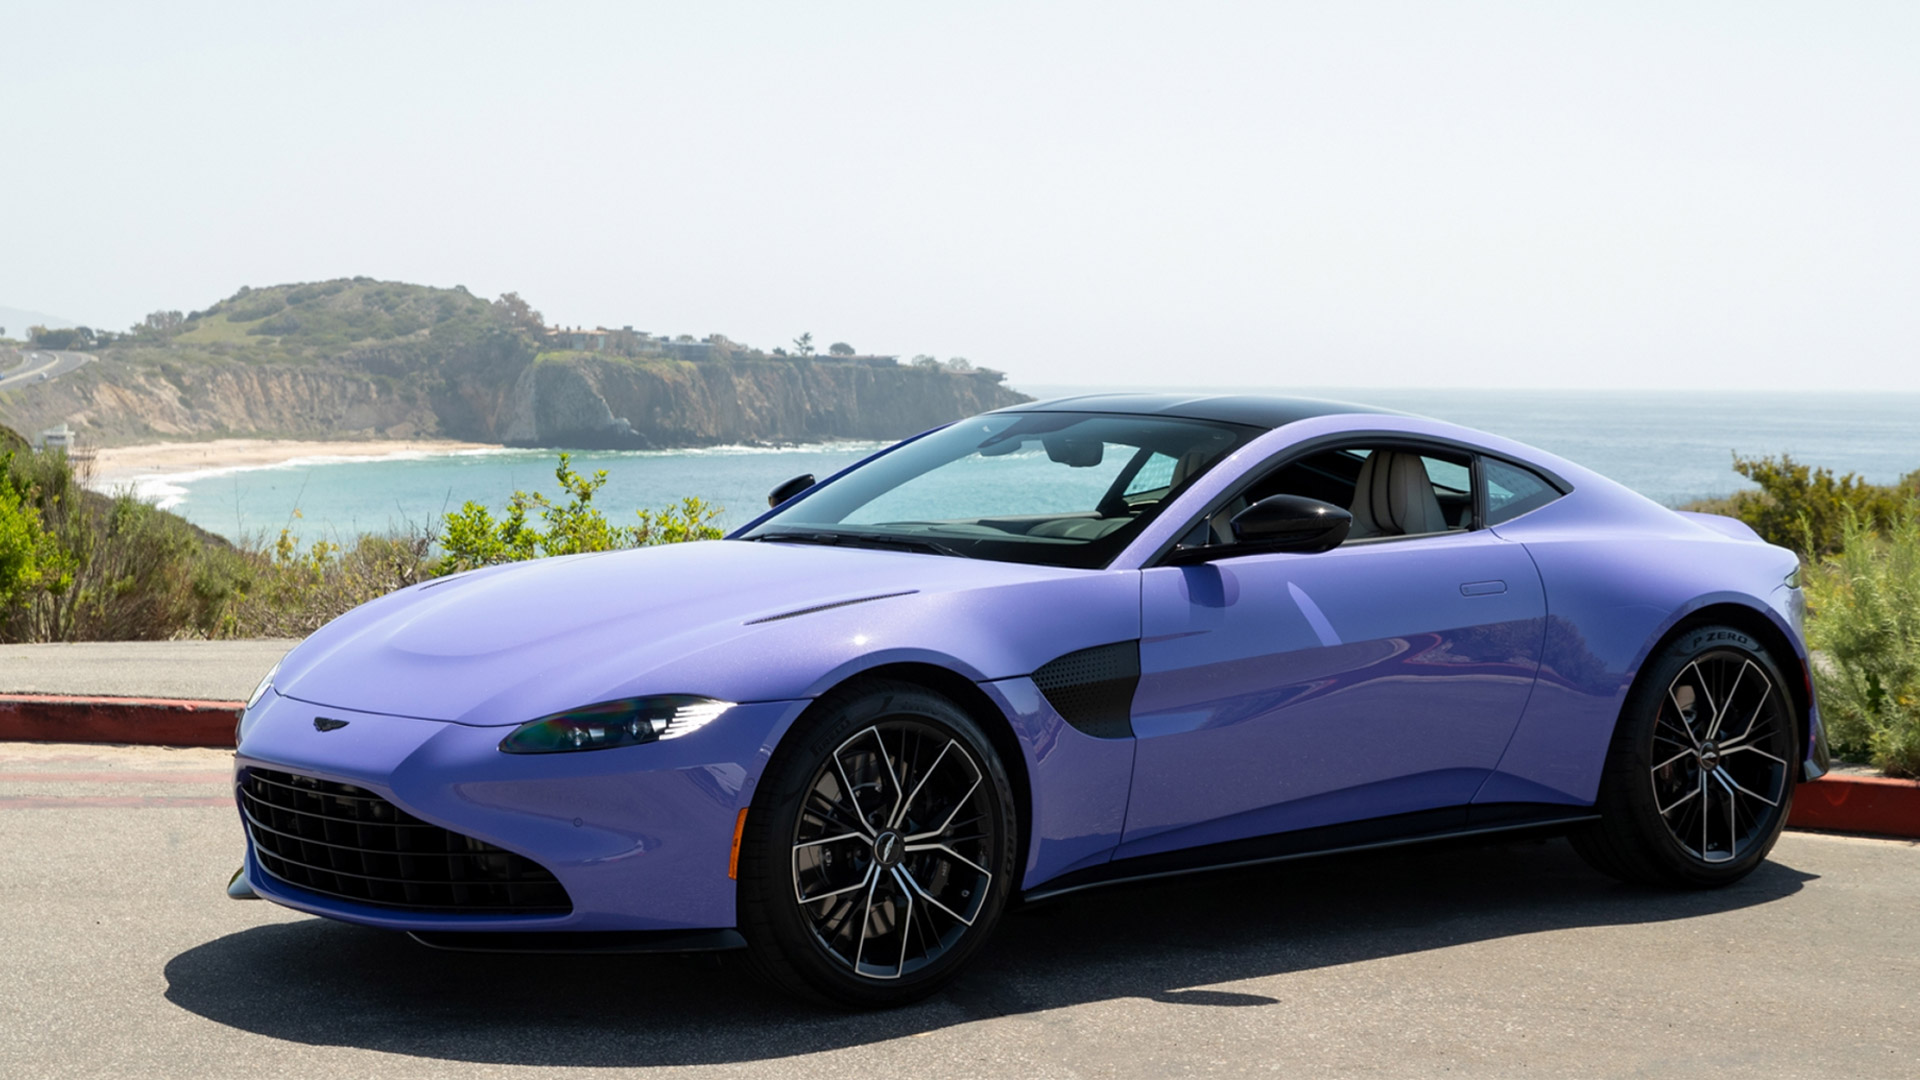 The Aston Martin Vantage Coupe in Ultra Violet